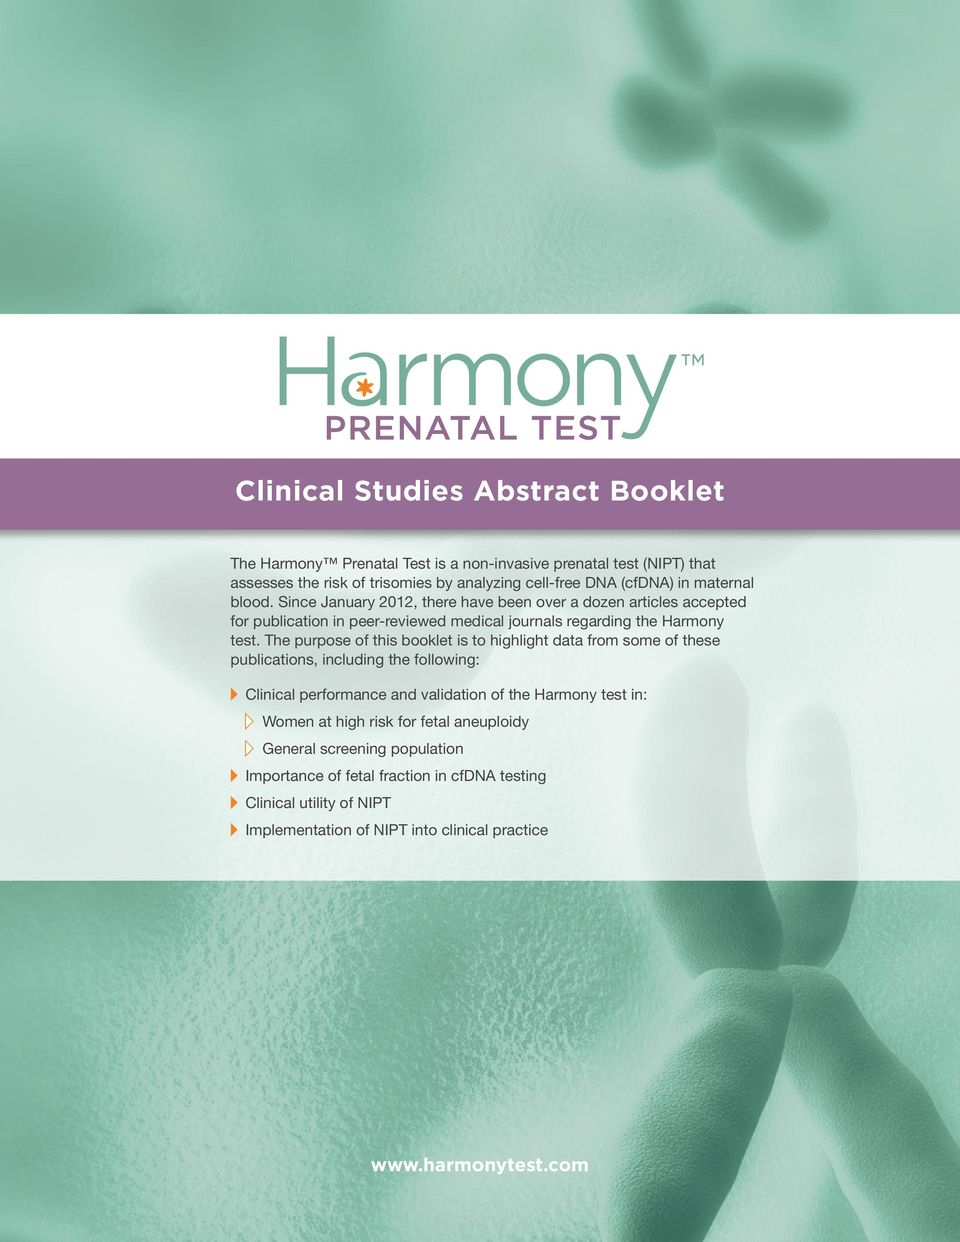 The purpose of this booklet is to highlight data from some of these publications, including the following: v Clinical performance and validation of the Harmony test in: v Women at